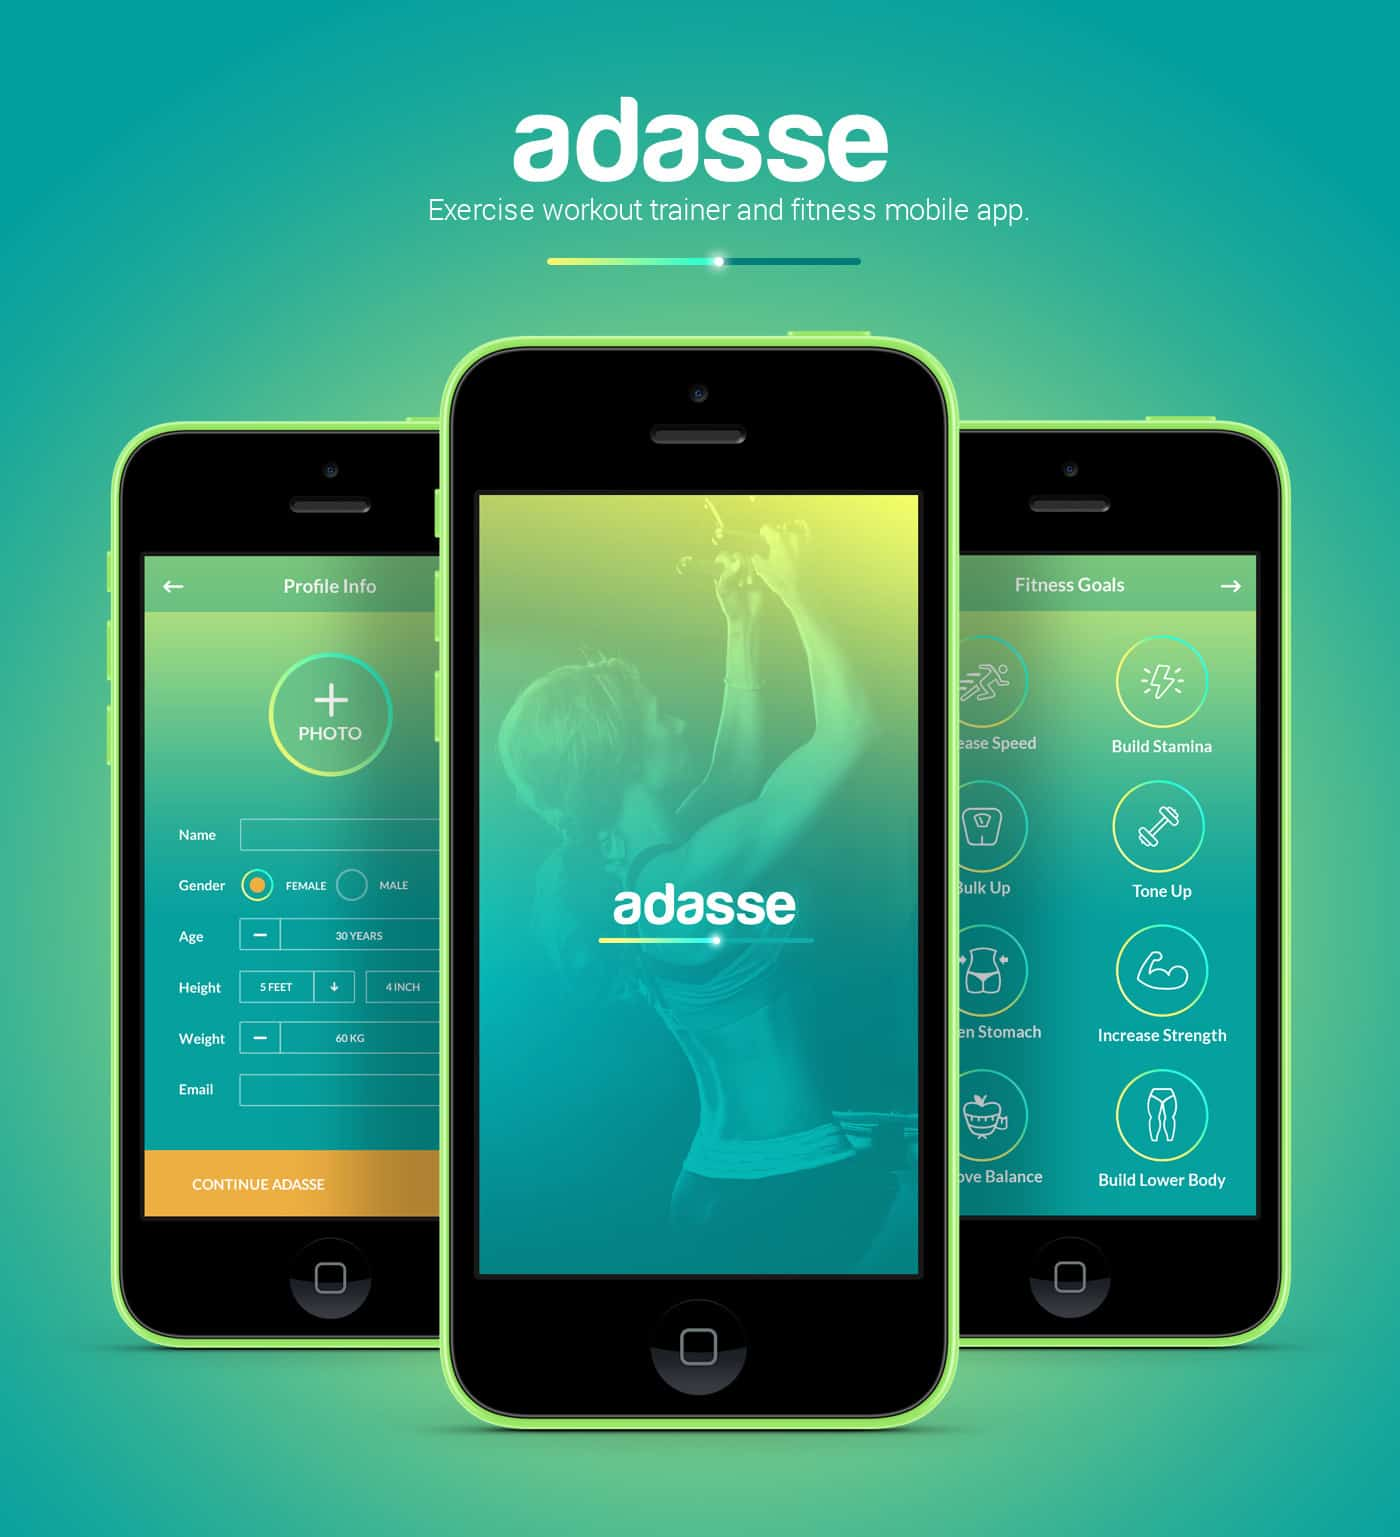 adasse gym workout mobile app by naresh kumar design ideas - App Design Ideas